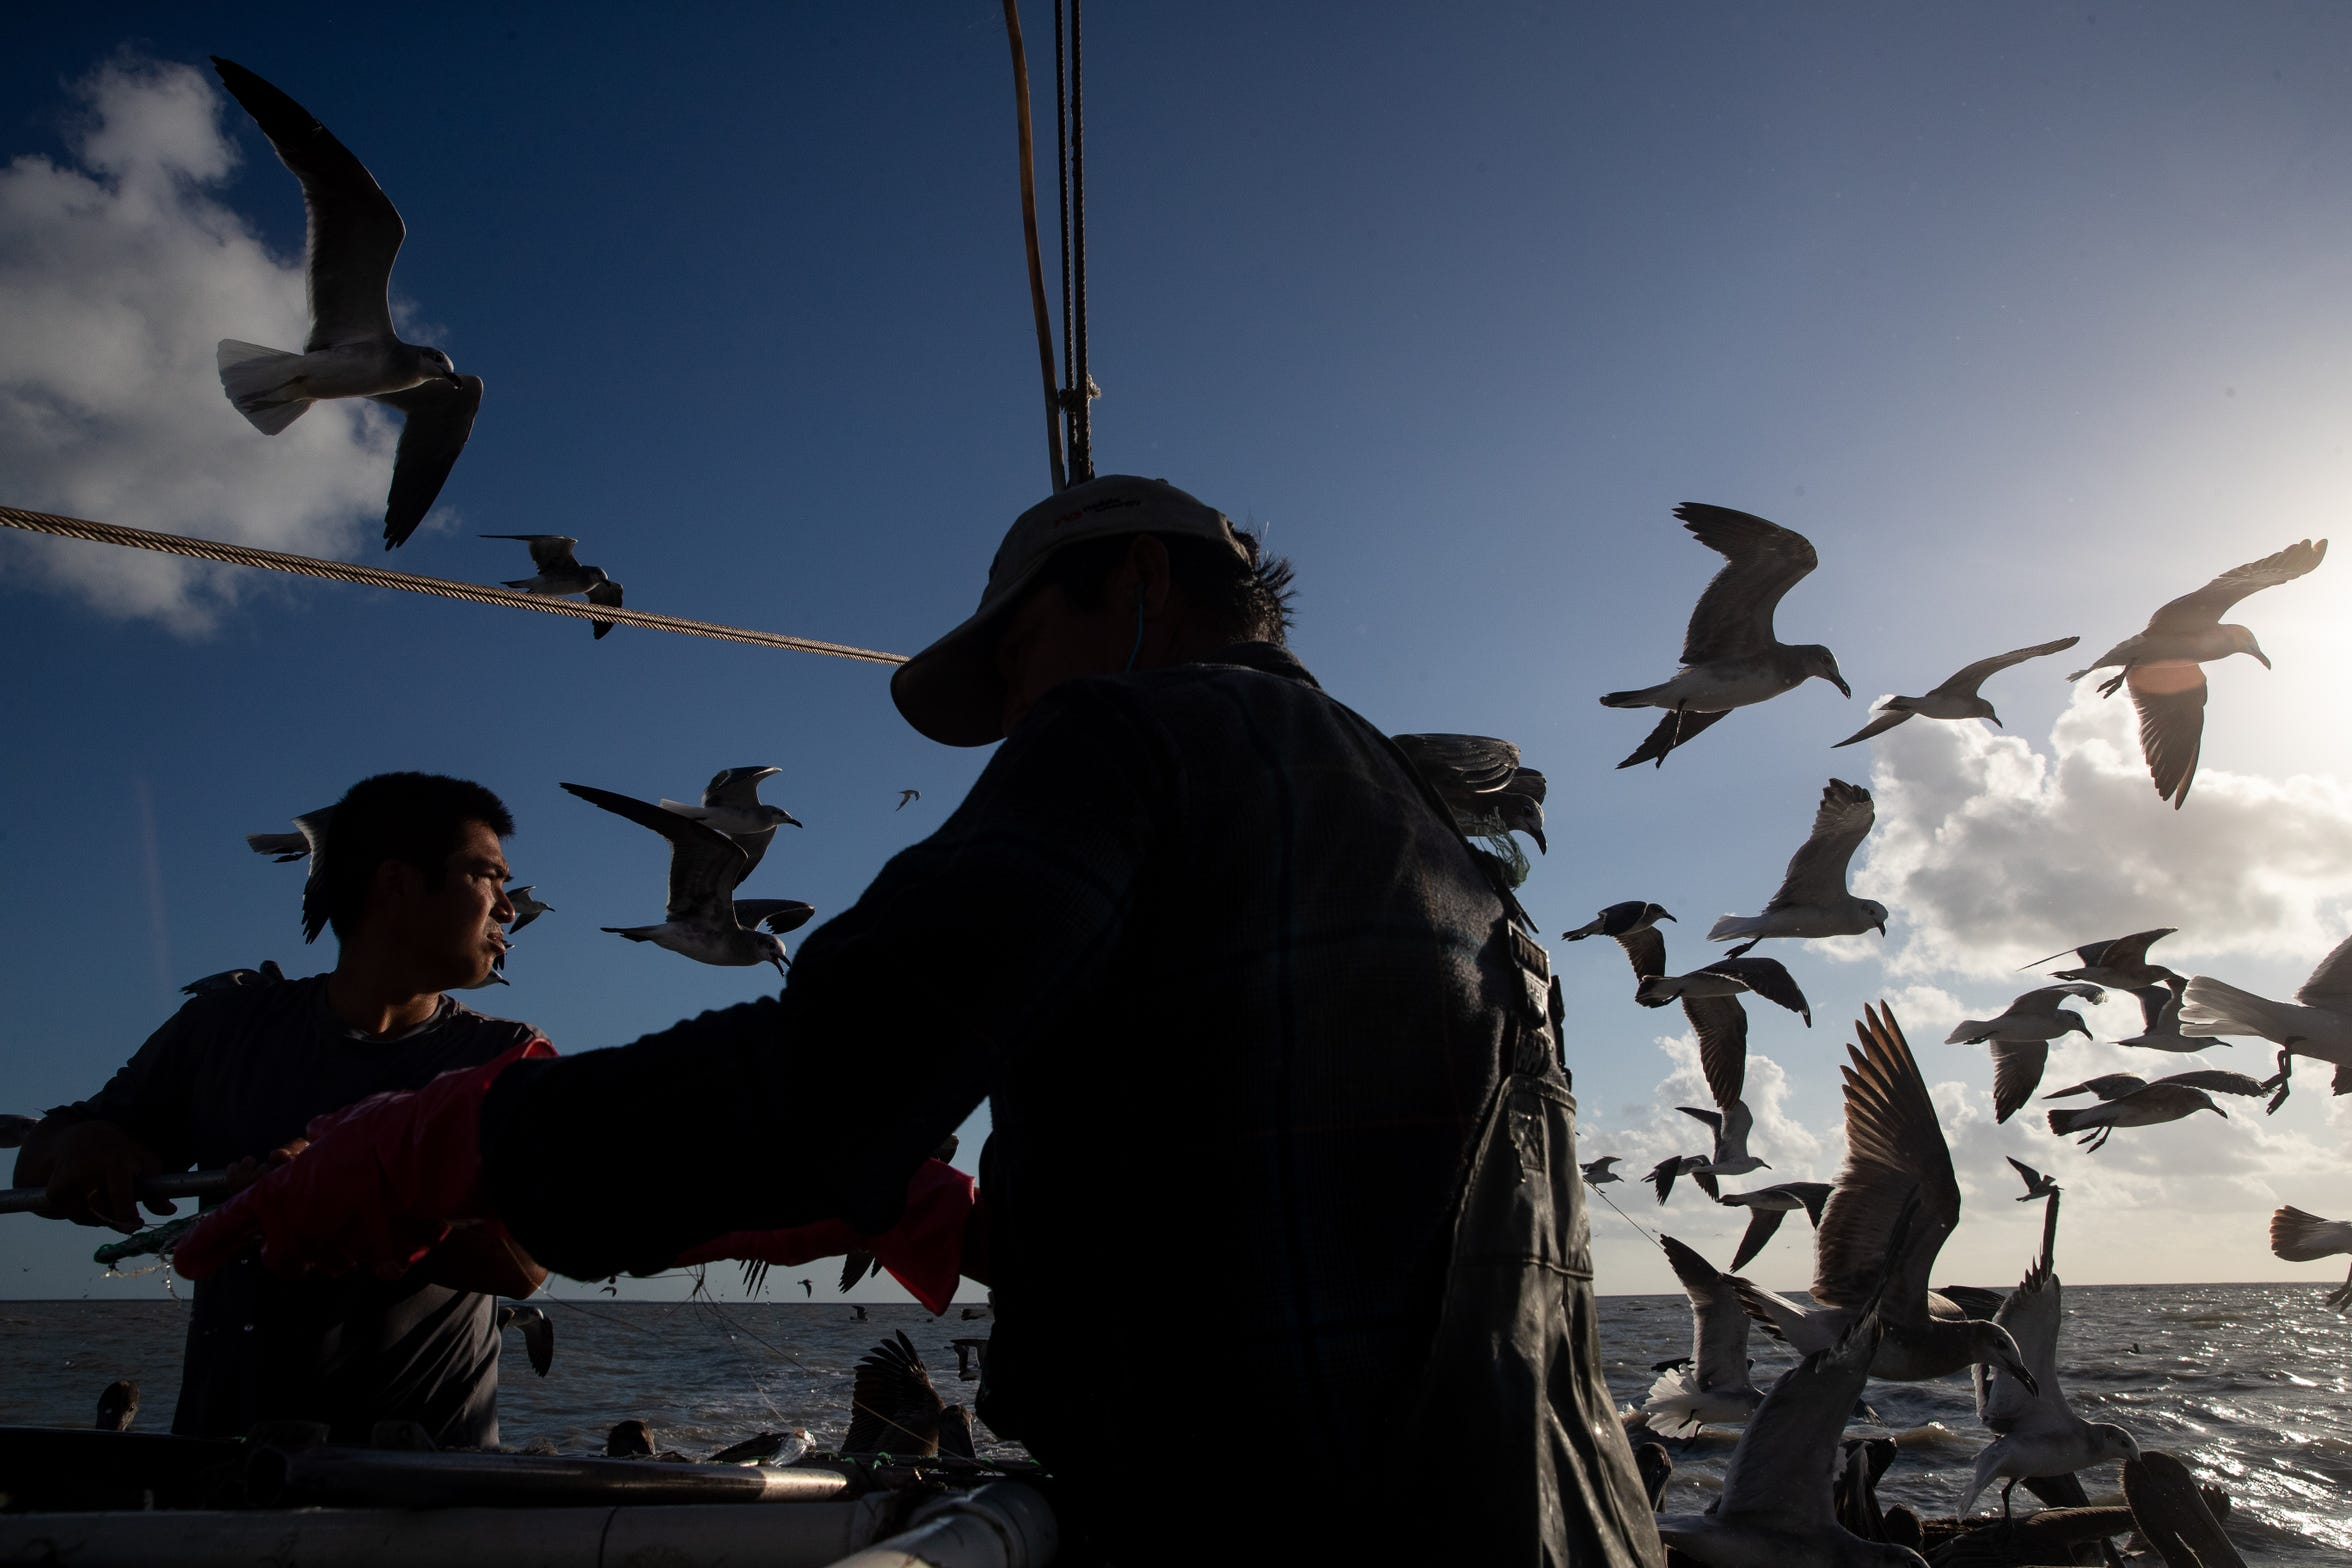 Birds surround Doan Pham and his son Tuan Pham as they separate their catch aboard his shrimping boat, Margie in Aransas Bay on Tuesday, Oct. 1, 2109.